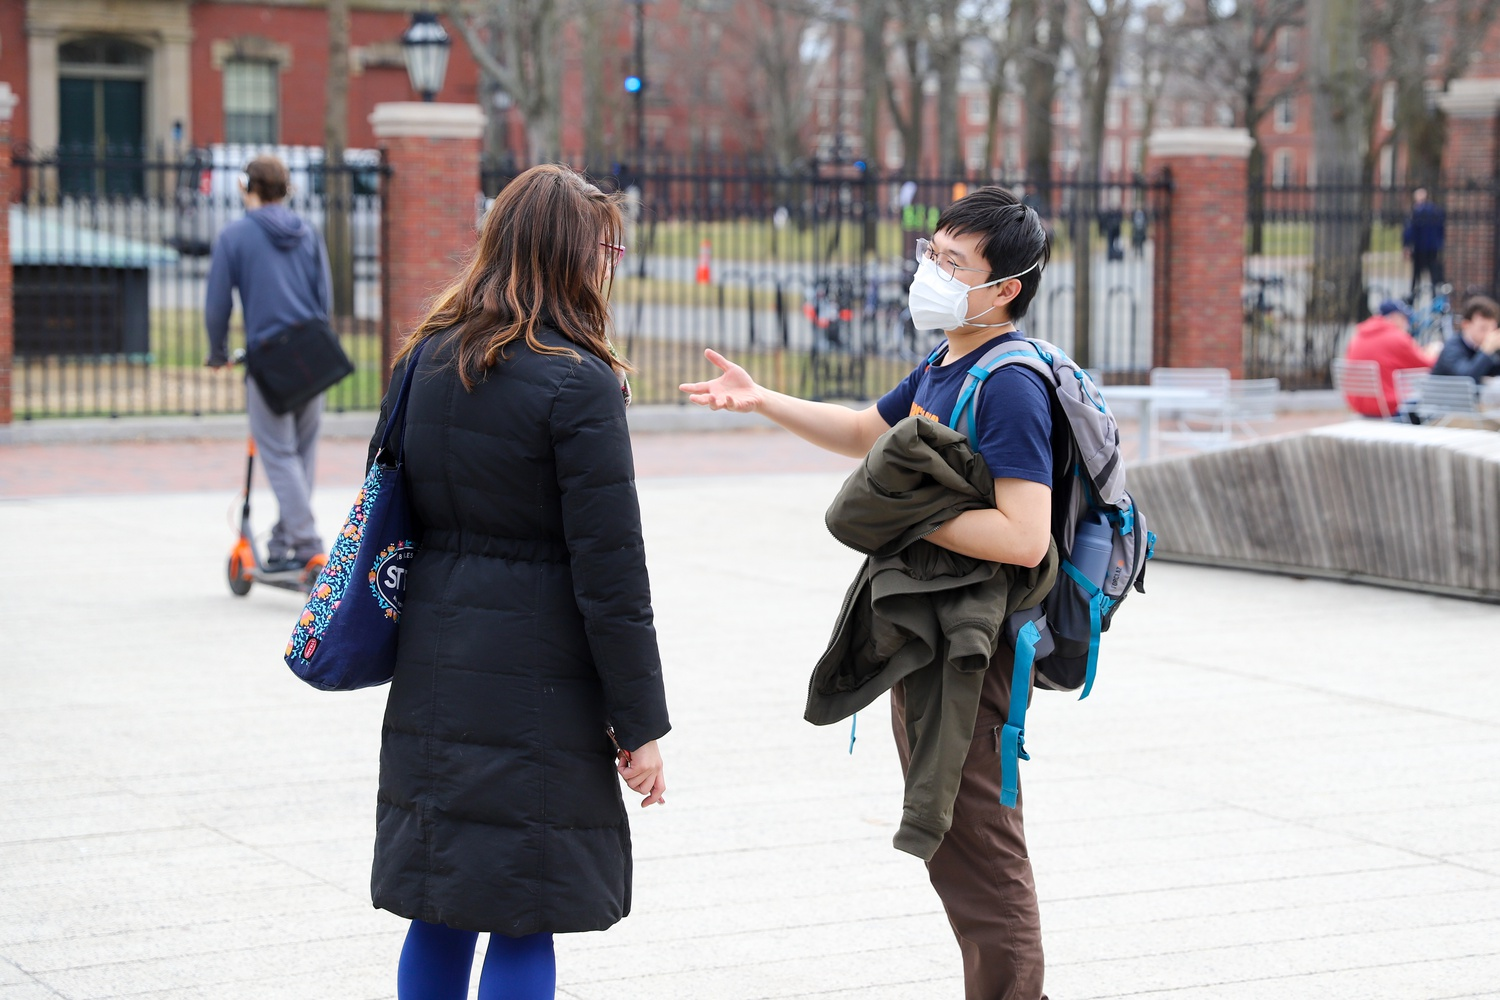 """The """"six pillars"""" to control the outbreak are mask wearing, social distancing, testing, contract tracing, isolation, and treatment, all of which would be necessary to be in place at Harvard for students to return."""